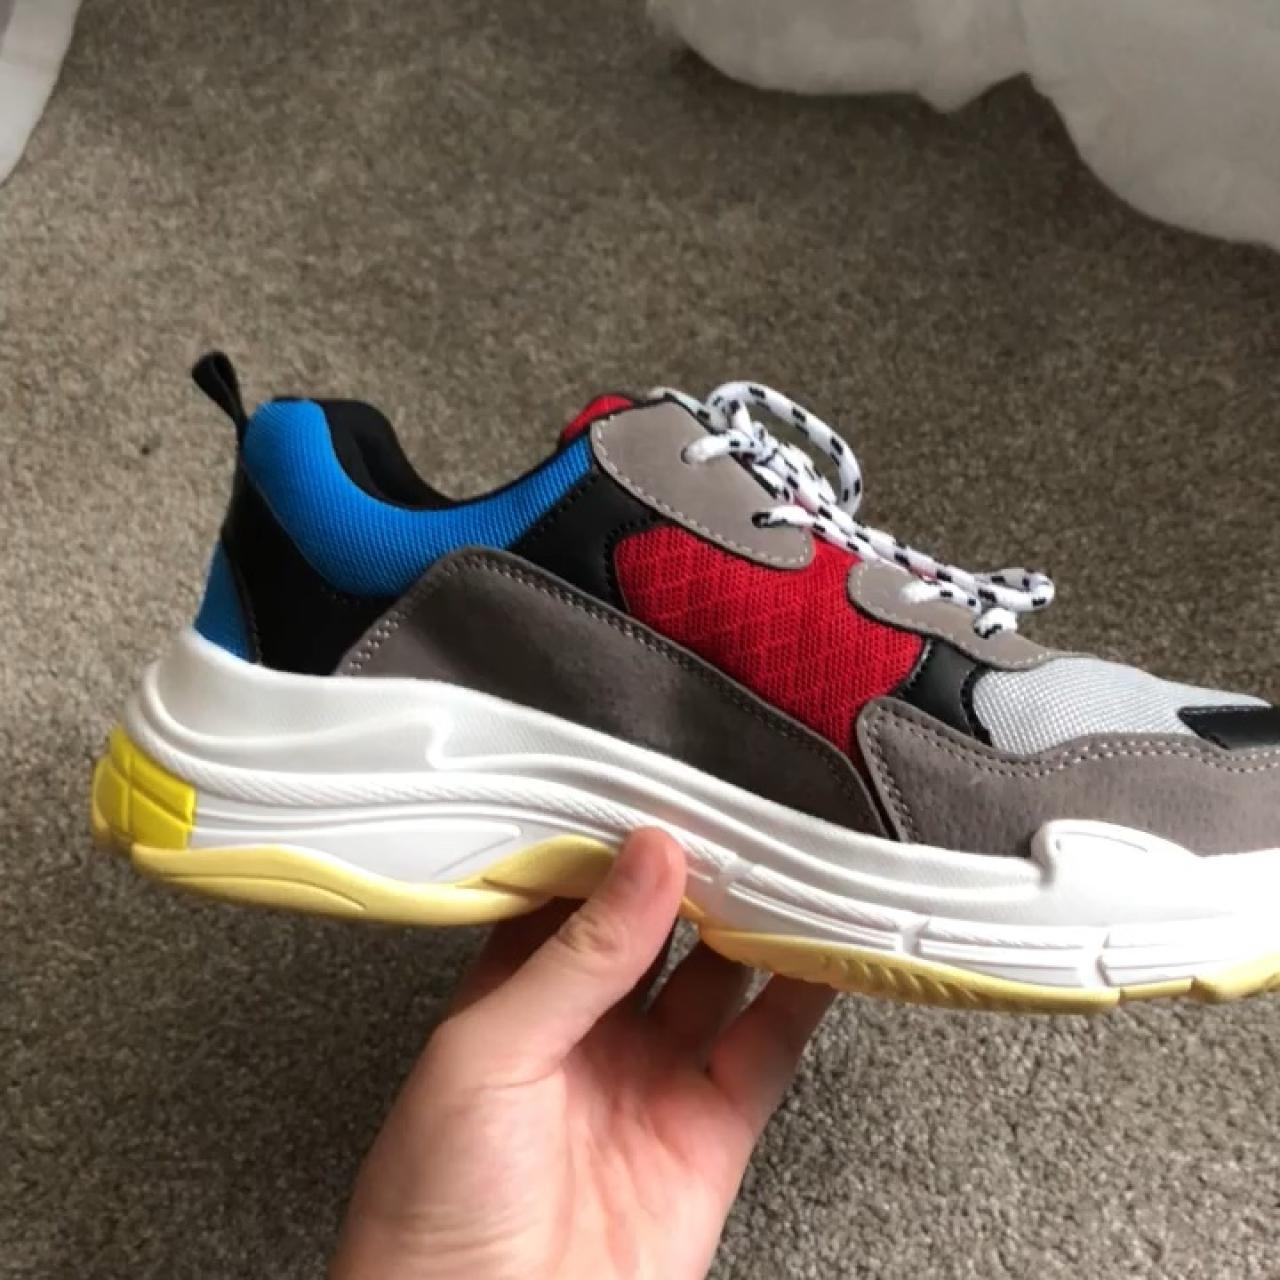 856767d14a8 ... HOLD     Ego official Edison Trainers. Brand new